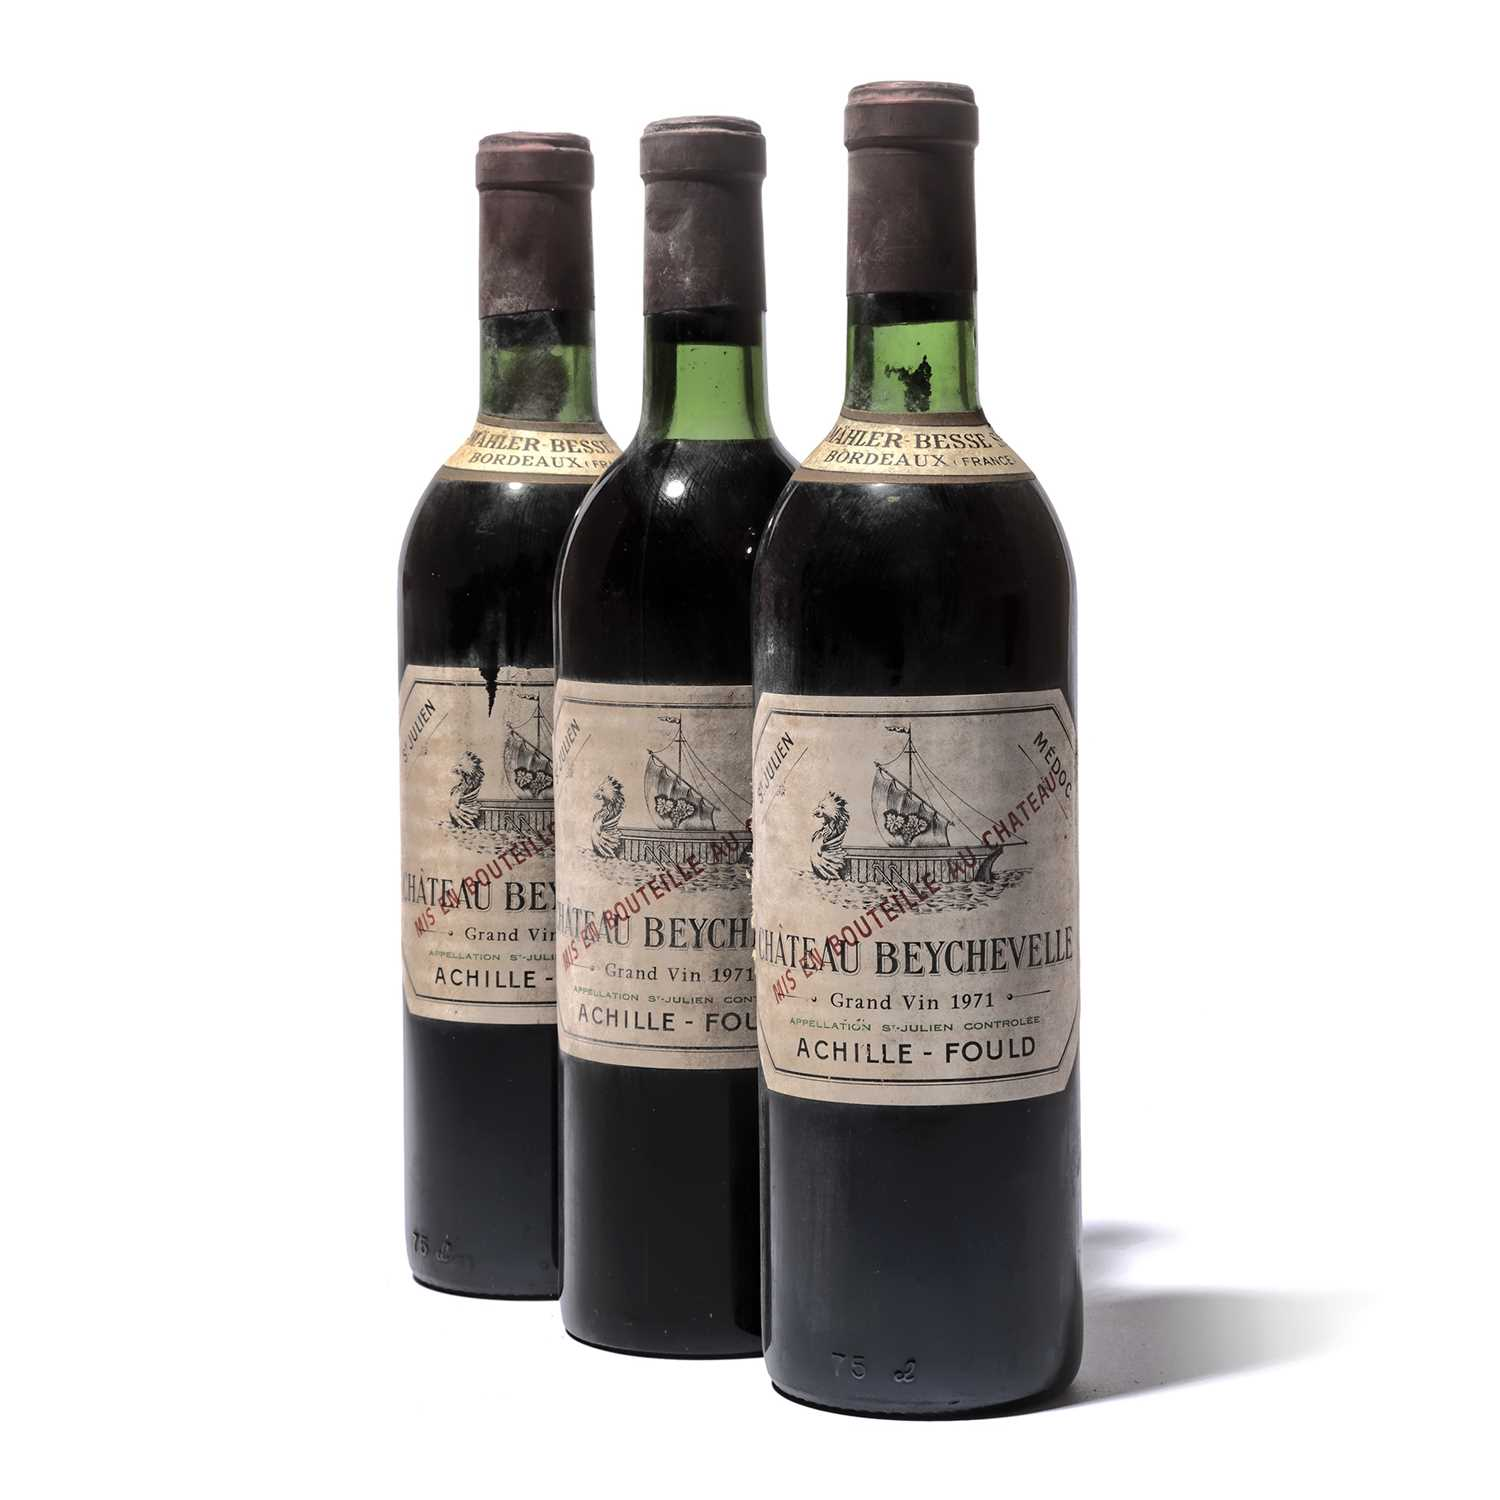 Lot 54-12 bottles 1971 Ch Beychevelle